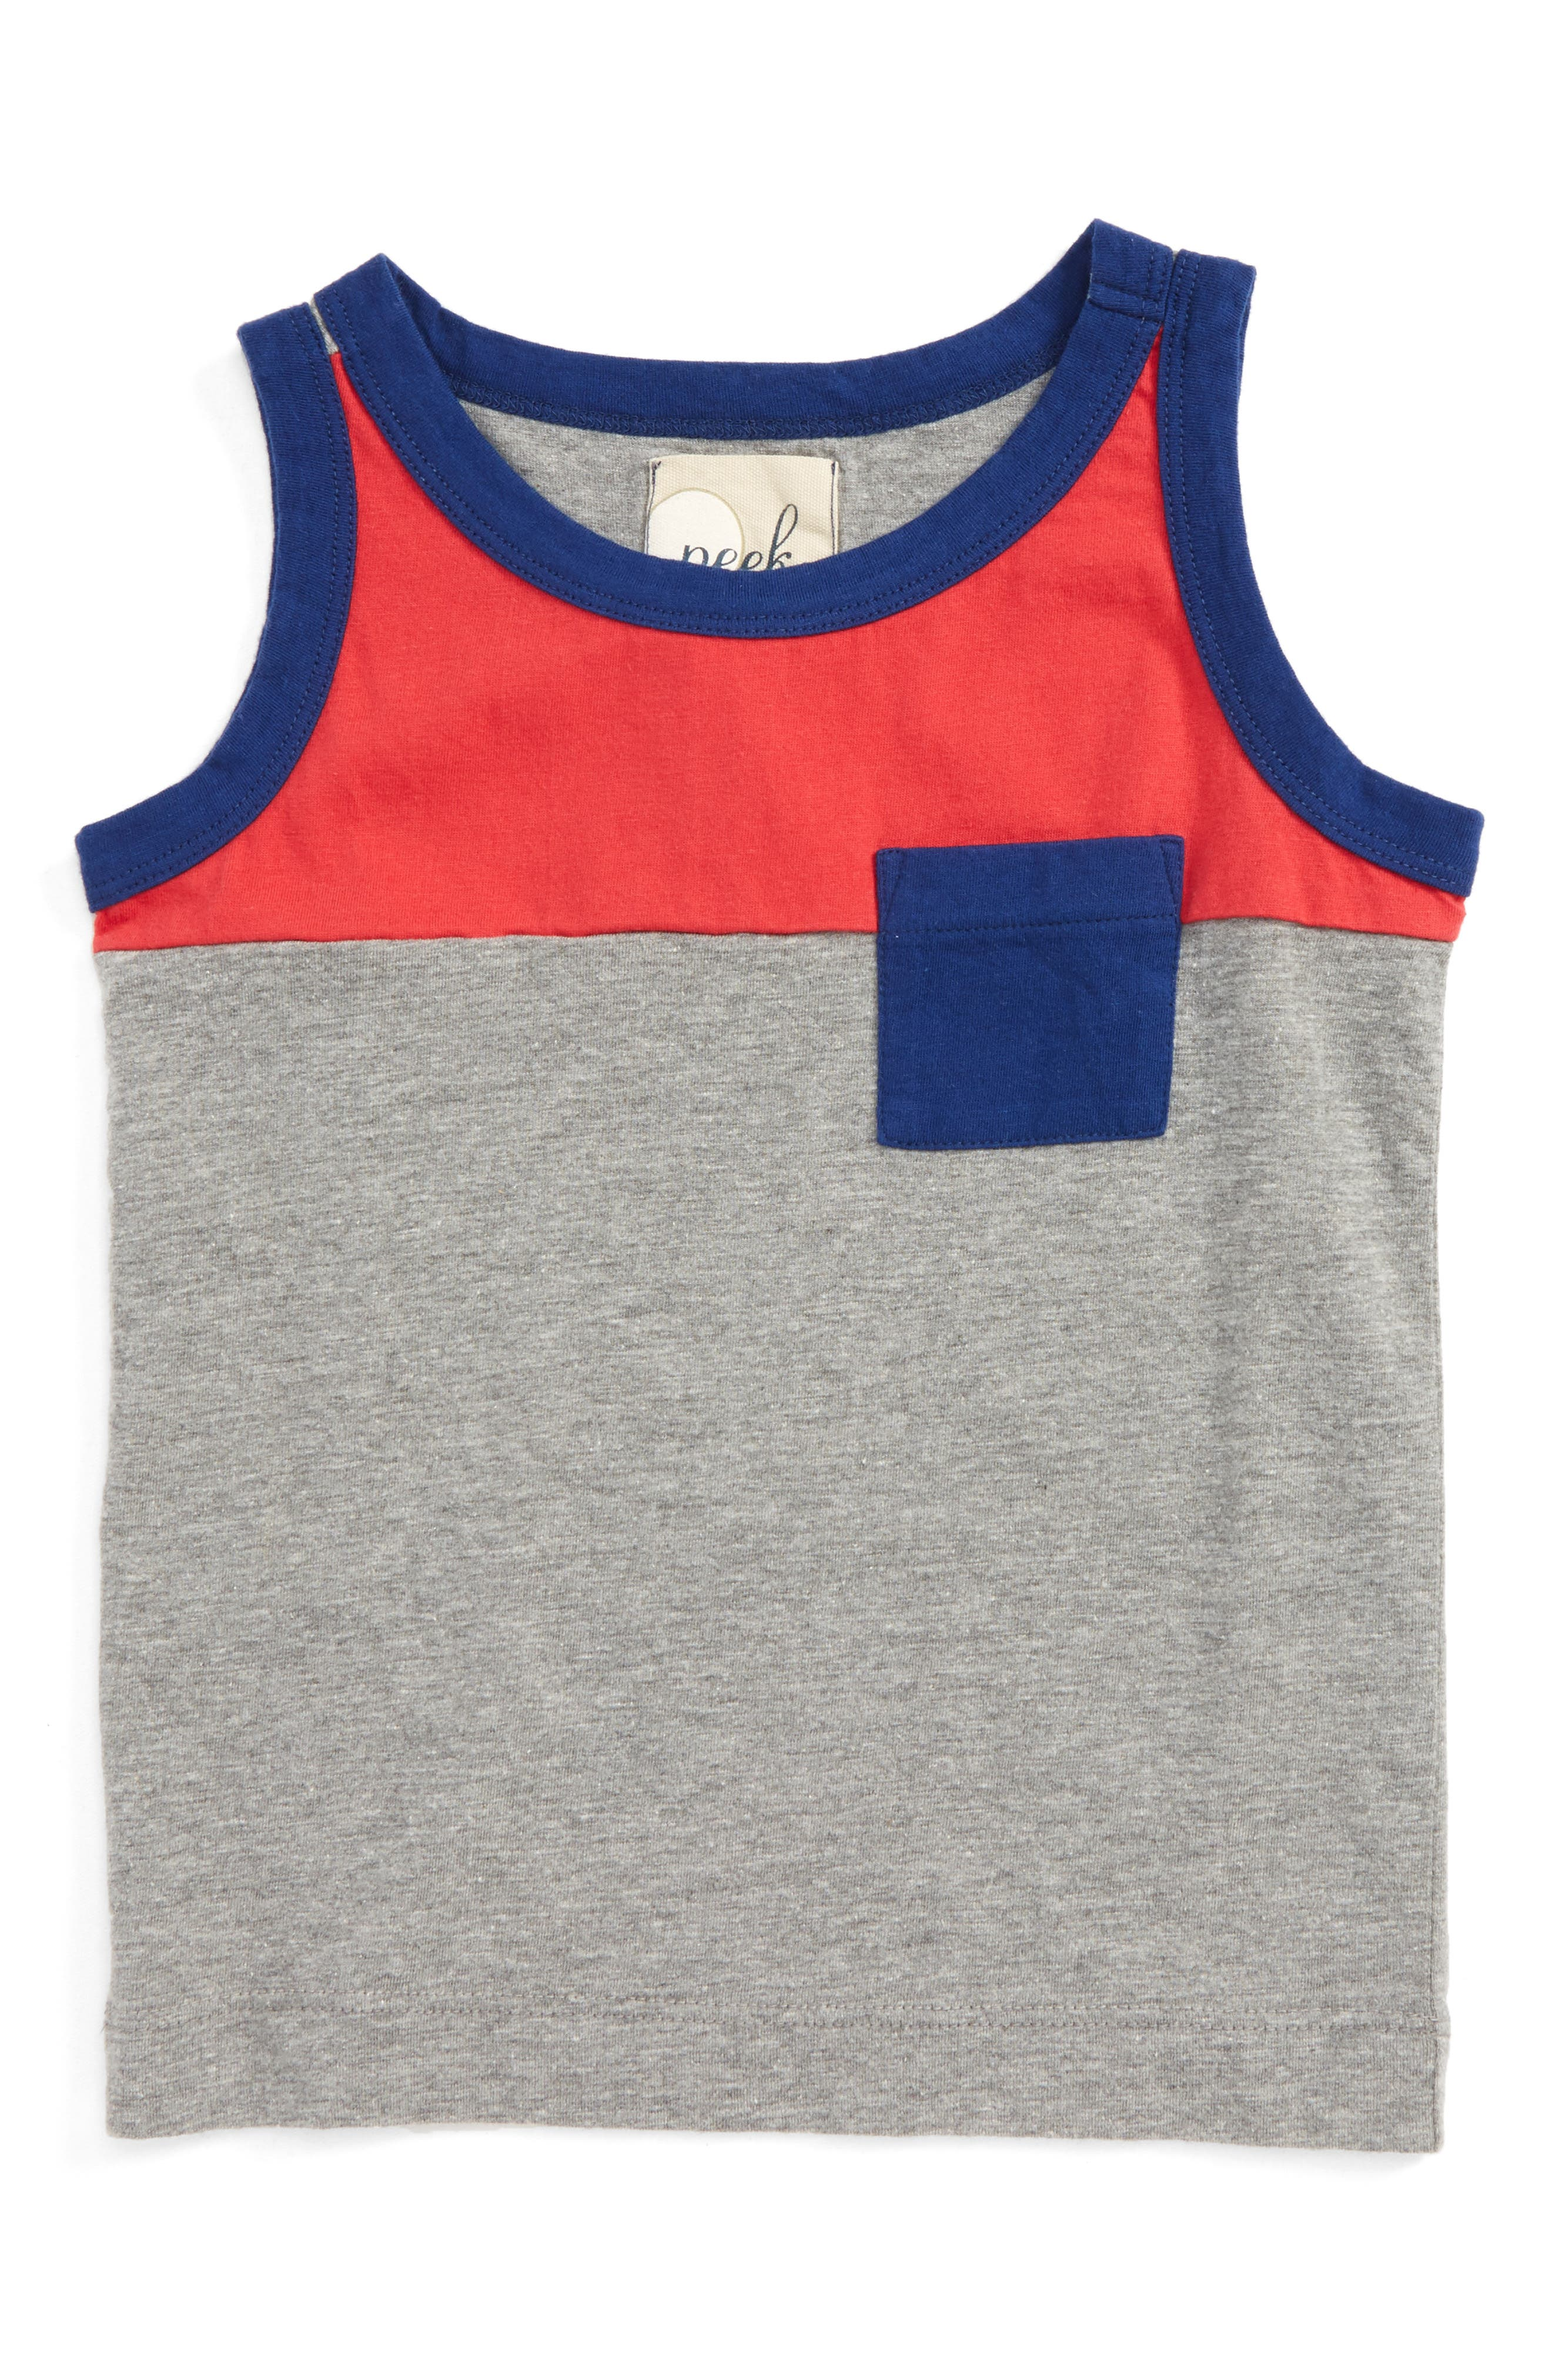 Main Image - Peek Colorblock Tank (Toddler Boys, Little Boys & Big Boys)